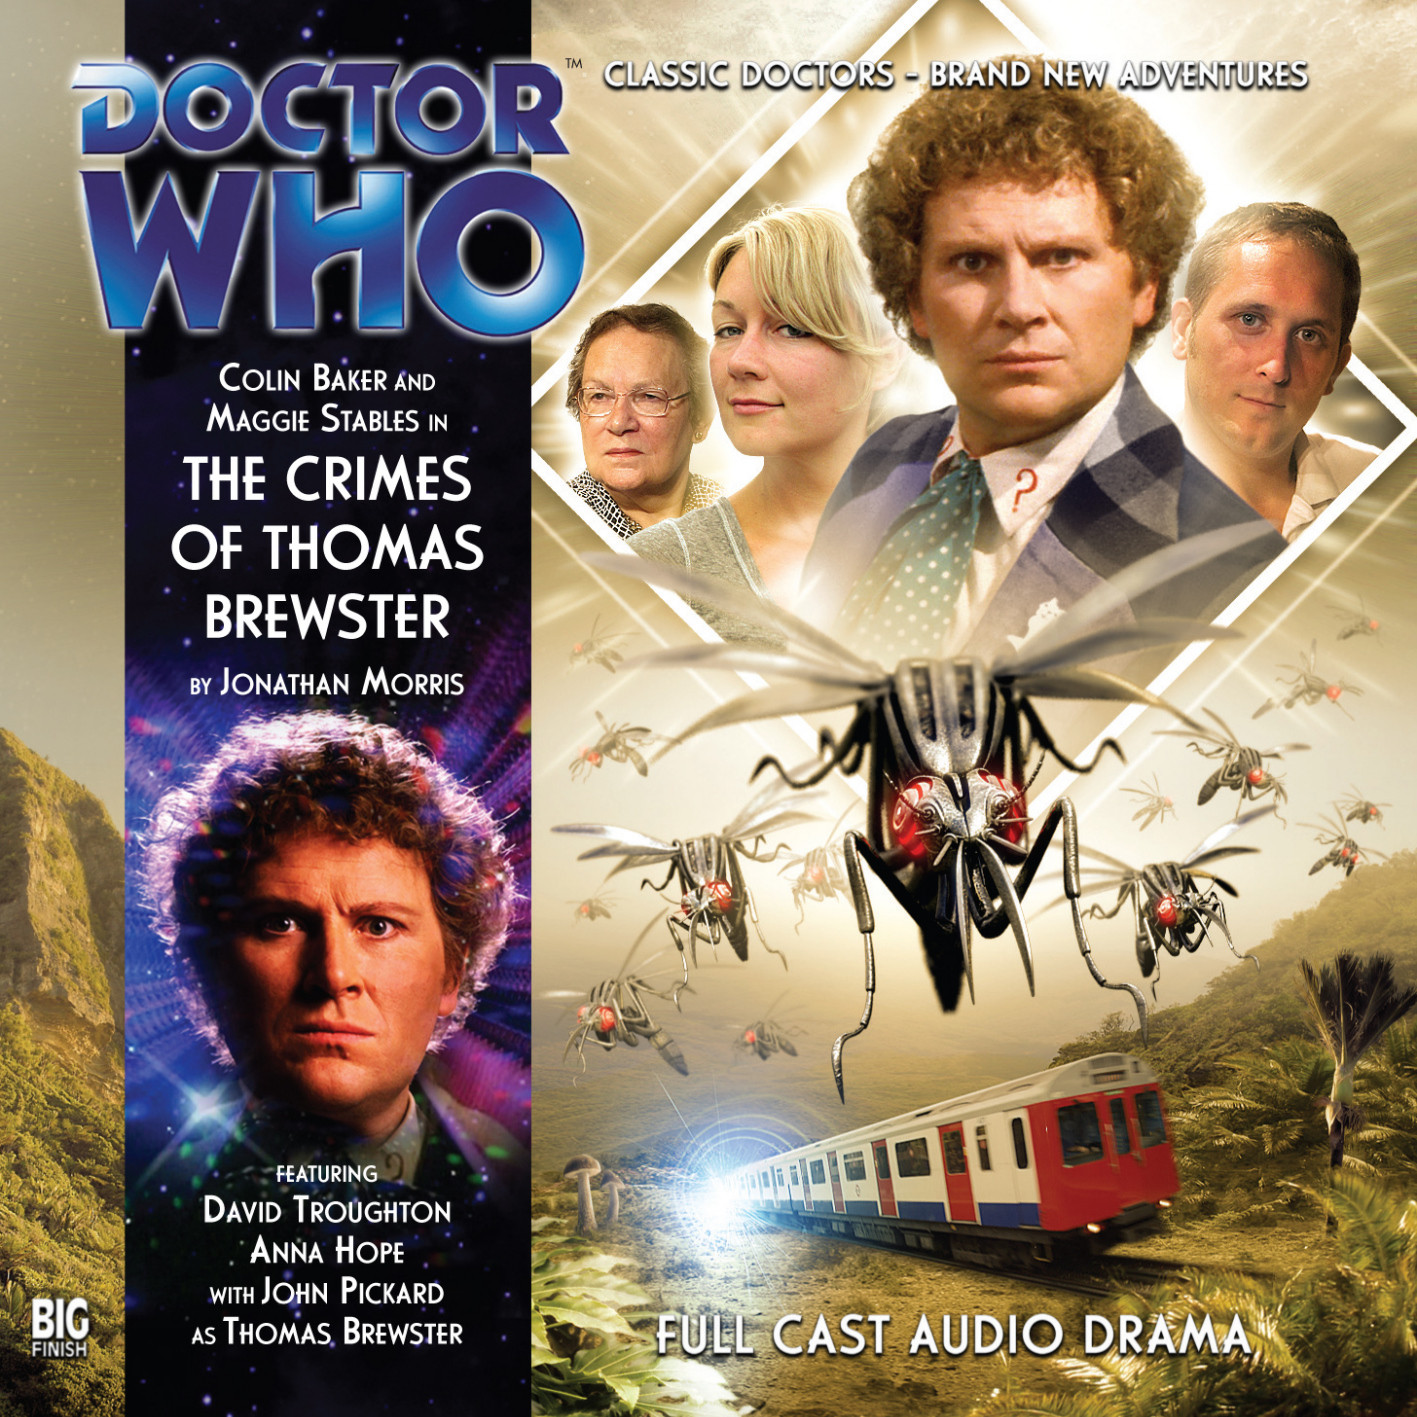 The Crimes of Thomas Brewster (Credit: Big Finish / Anthony Lamb)